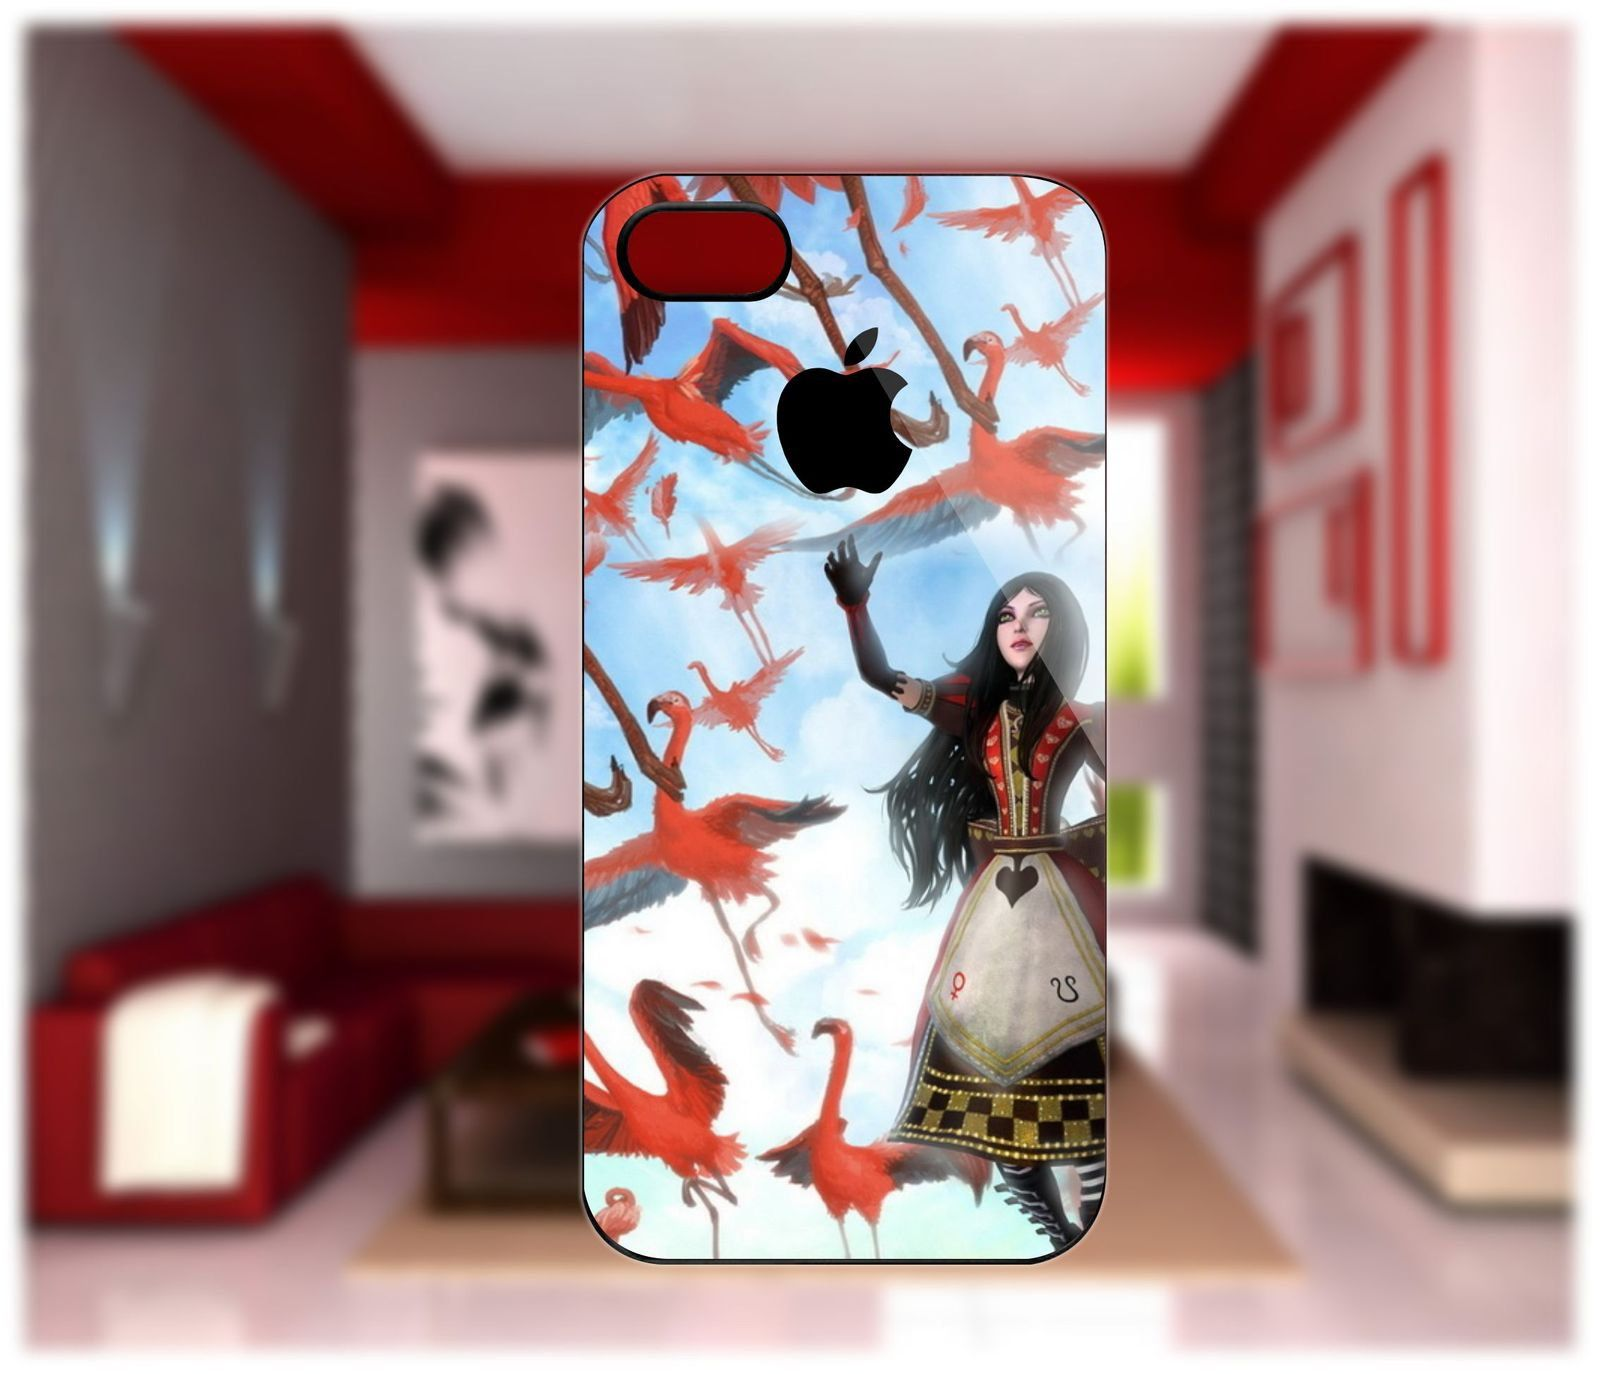 Alice Madness Case For iPhone 5/4/4S Samsung Galaxy S2/S3/S4 Blackberry Z10 #iphone #iphone4 #iphone5 #iphonecase #samsung #samsunggalaxy #galaxy #galaxys2 #galaxys3 #galaxys4 #s4 #s4case #blackberry #blackberryz10 #z10 #z10case #blackberrycase